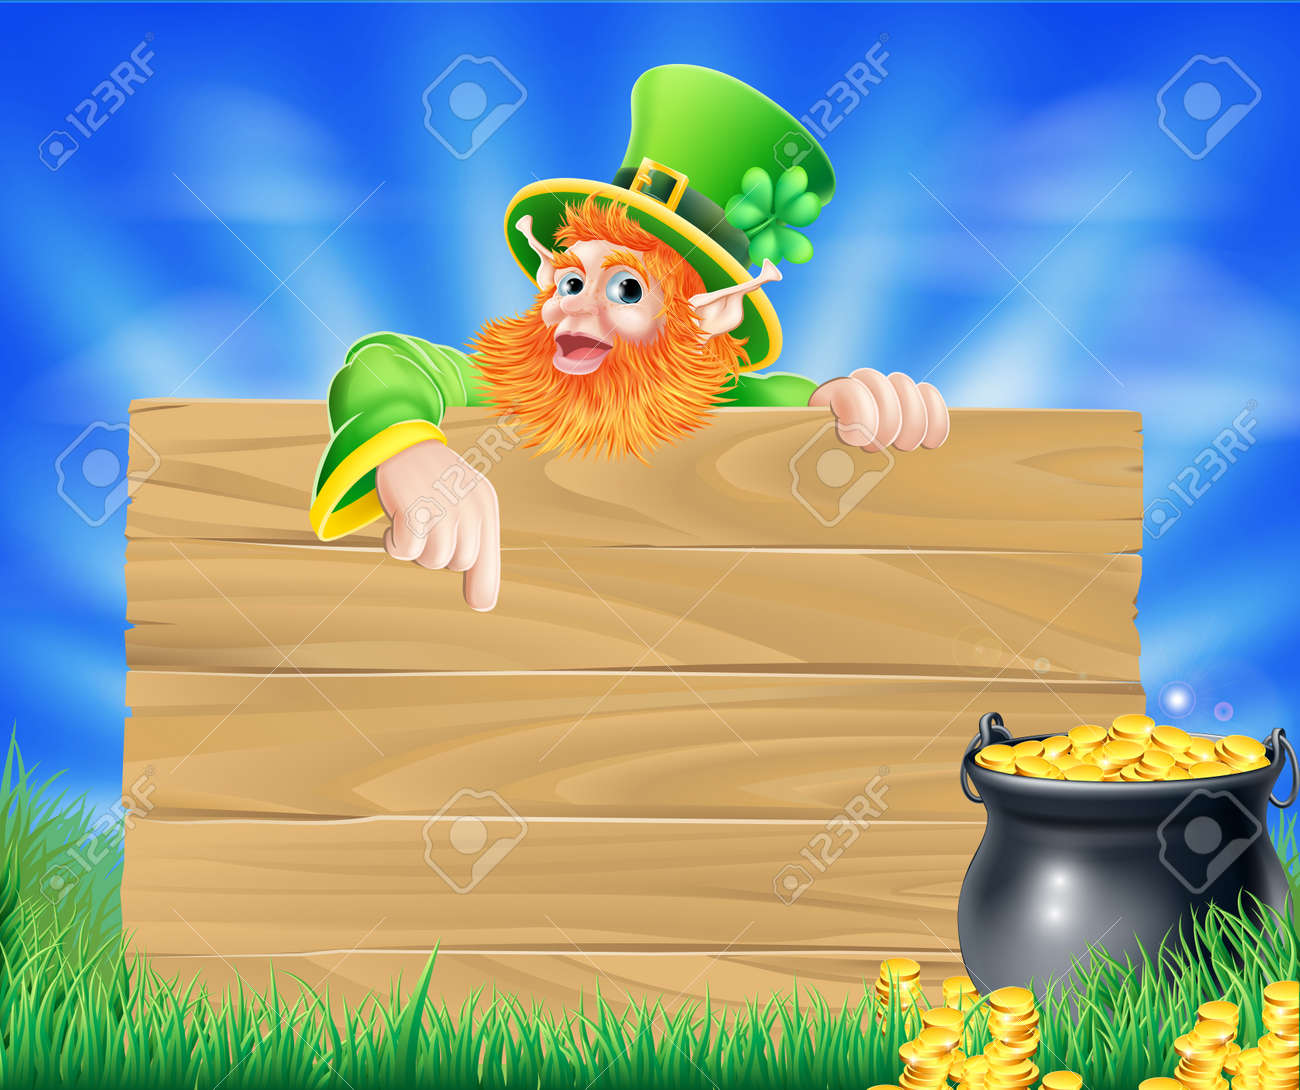 Uncategorized Leprechaun Background st patricks day leprechaun background with wooden sign and cauldron or pot of gold coins stock